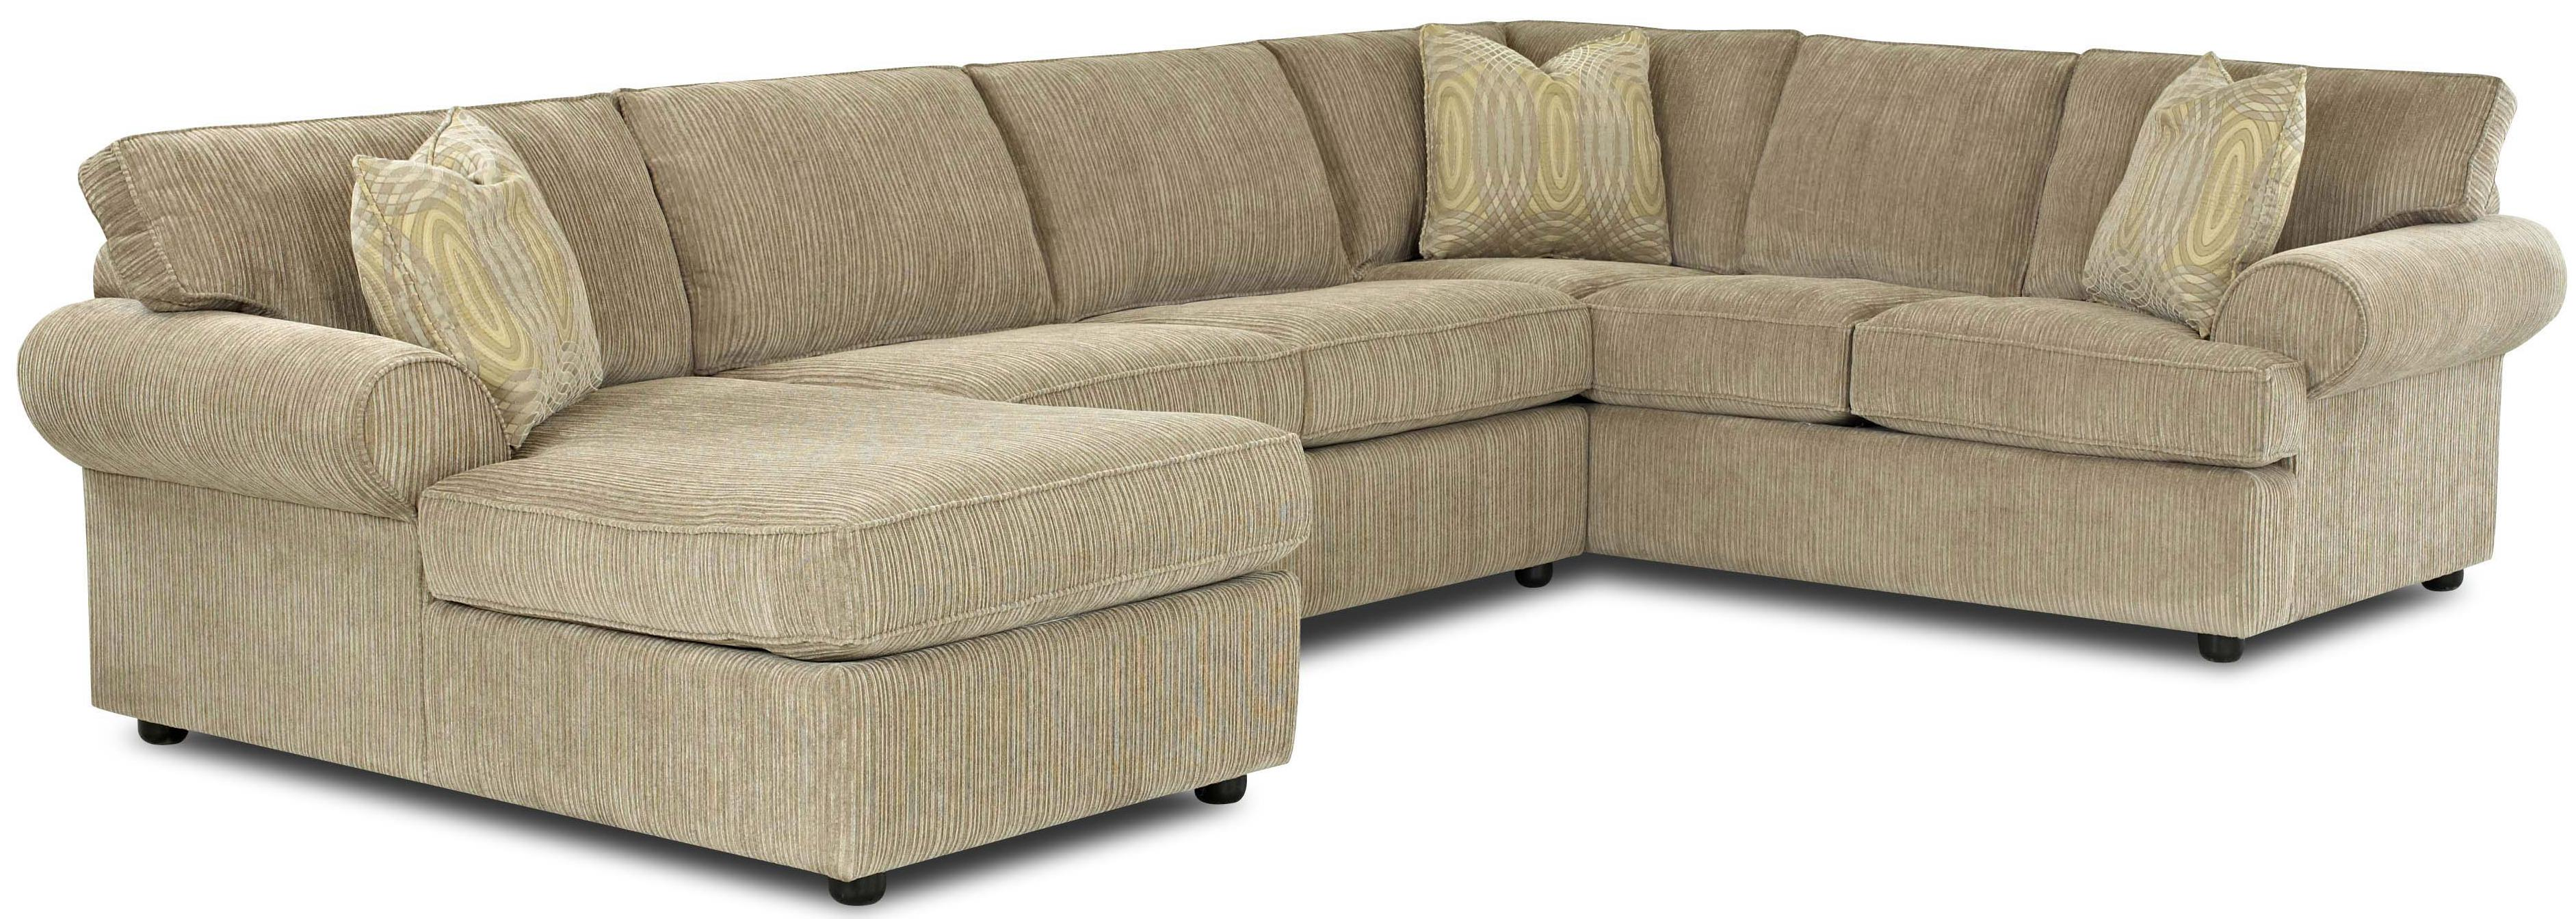 Julington transitional sectional sofa with rolled arms and left chaise and full dreamquest Loveseat chaise sectional